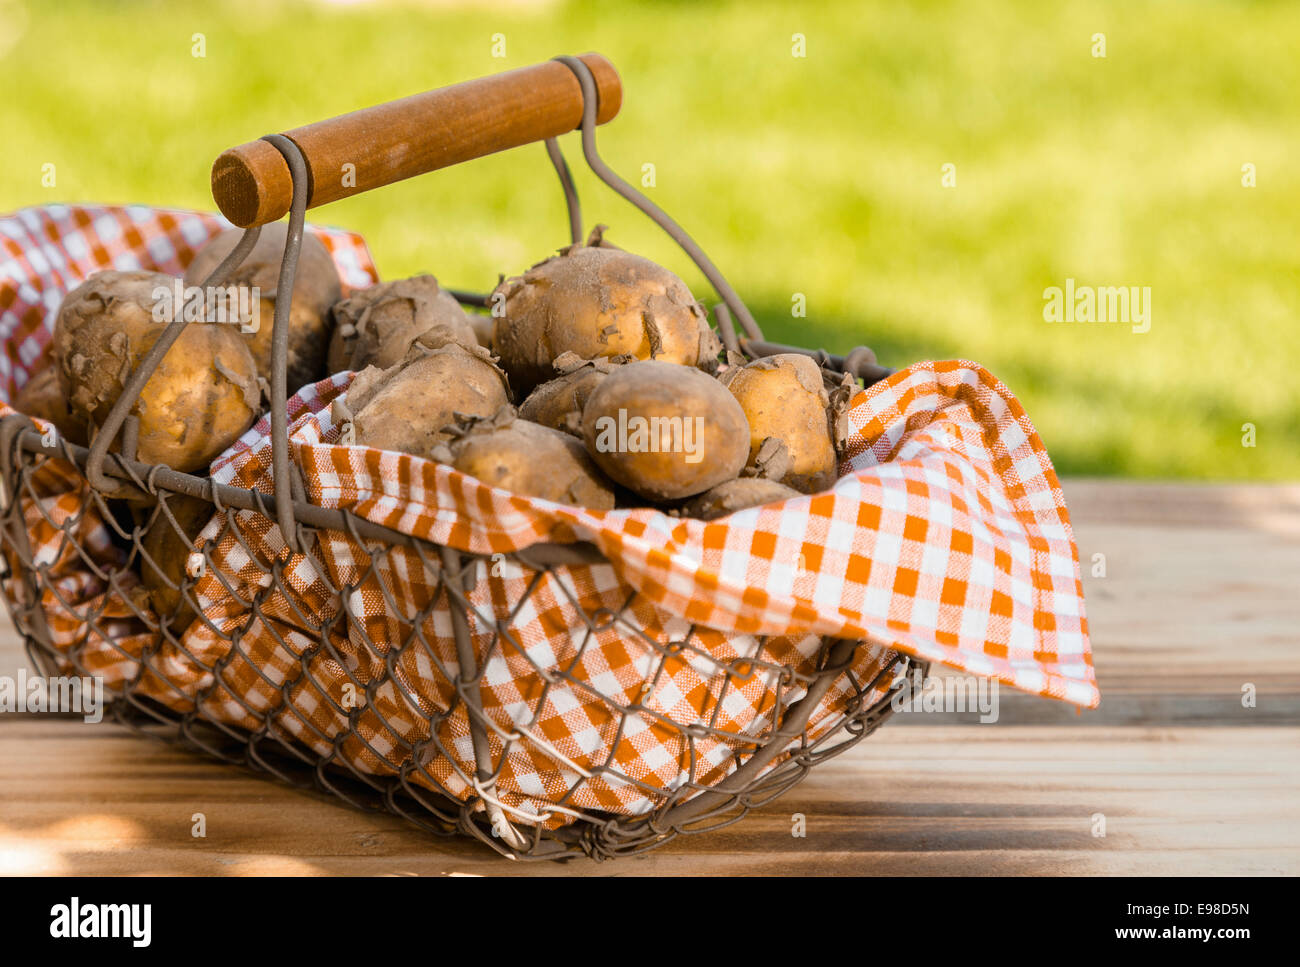 Rustic wire mesh basket, lined with checkered fabric and containing a fresh summer crop of new potatoes, placed Stock Photo